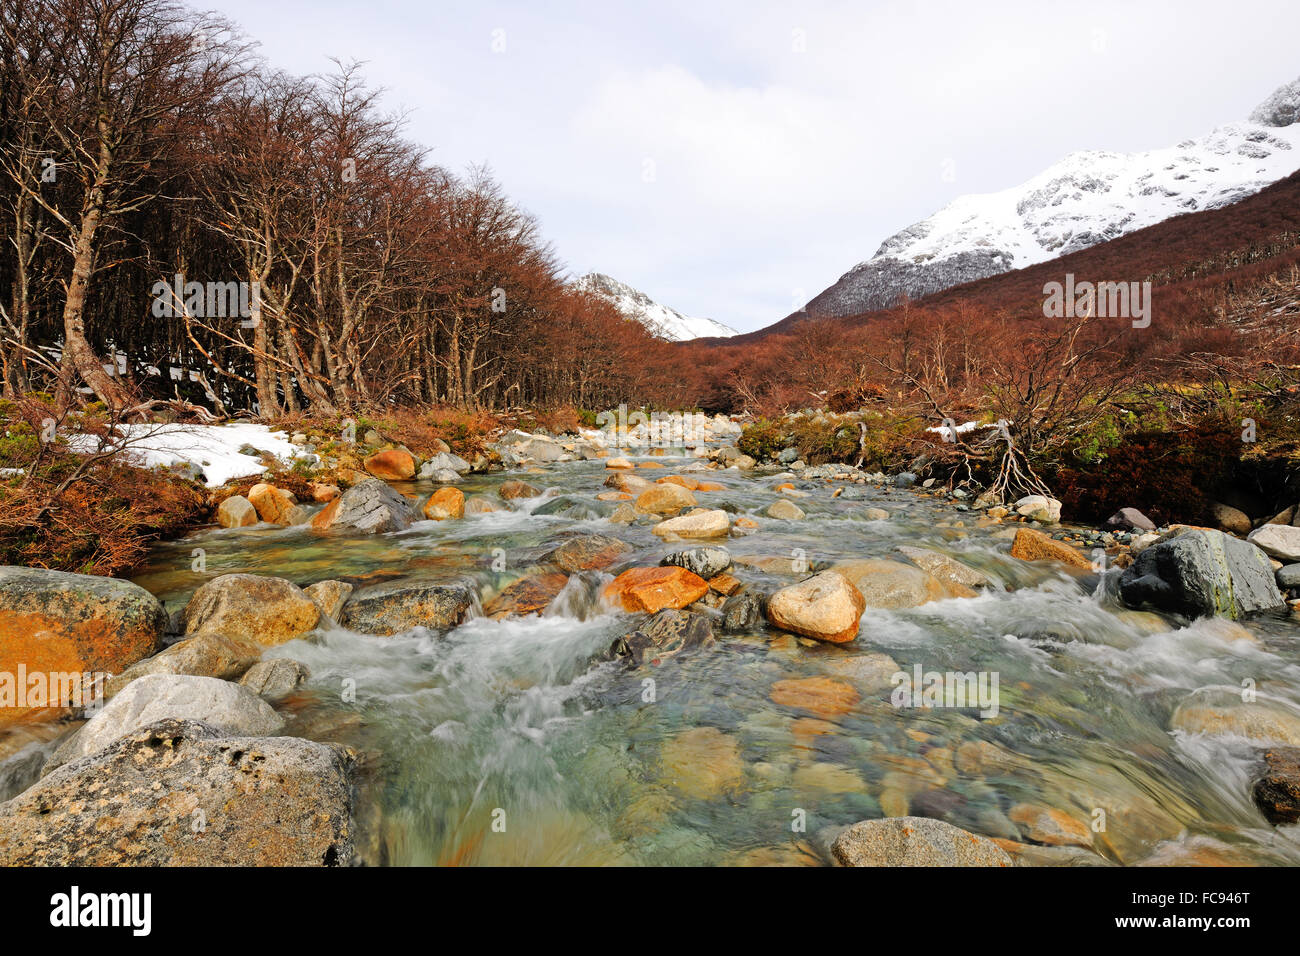 Patagonic landscape, river, Patagonia, Argentina, South America - Stock Image